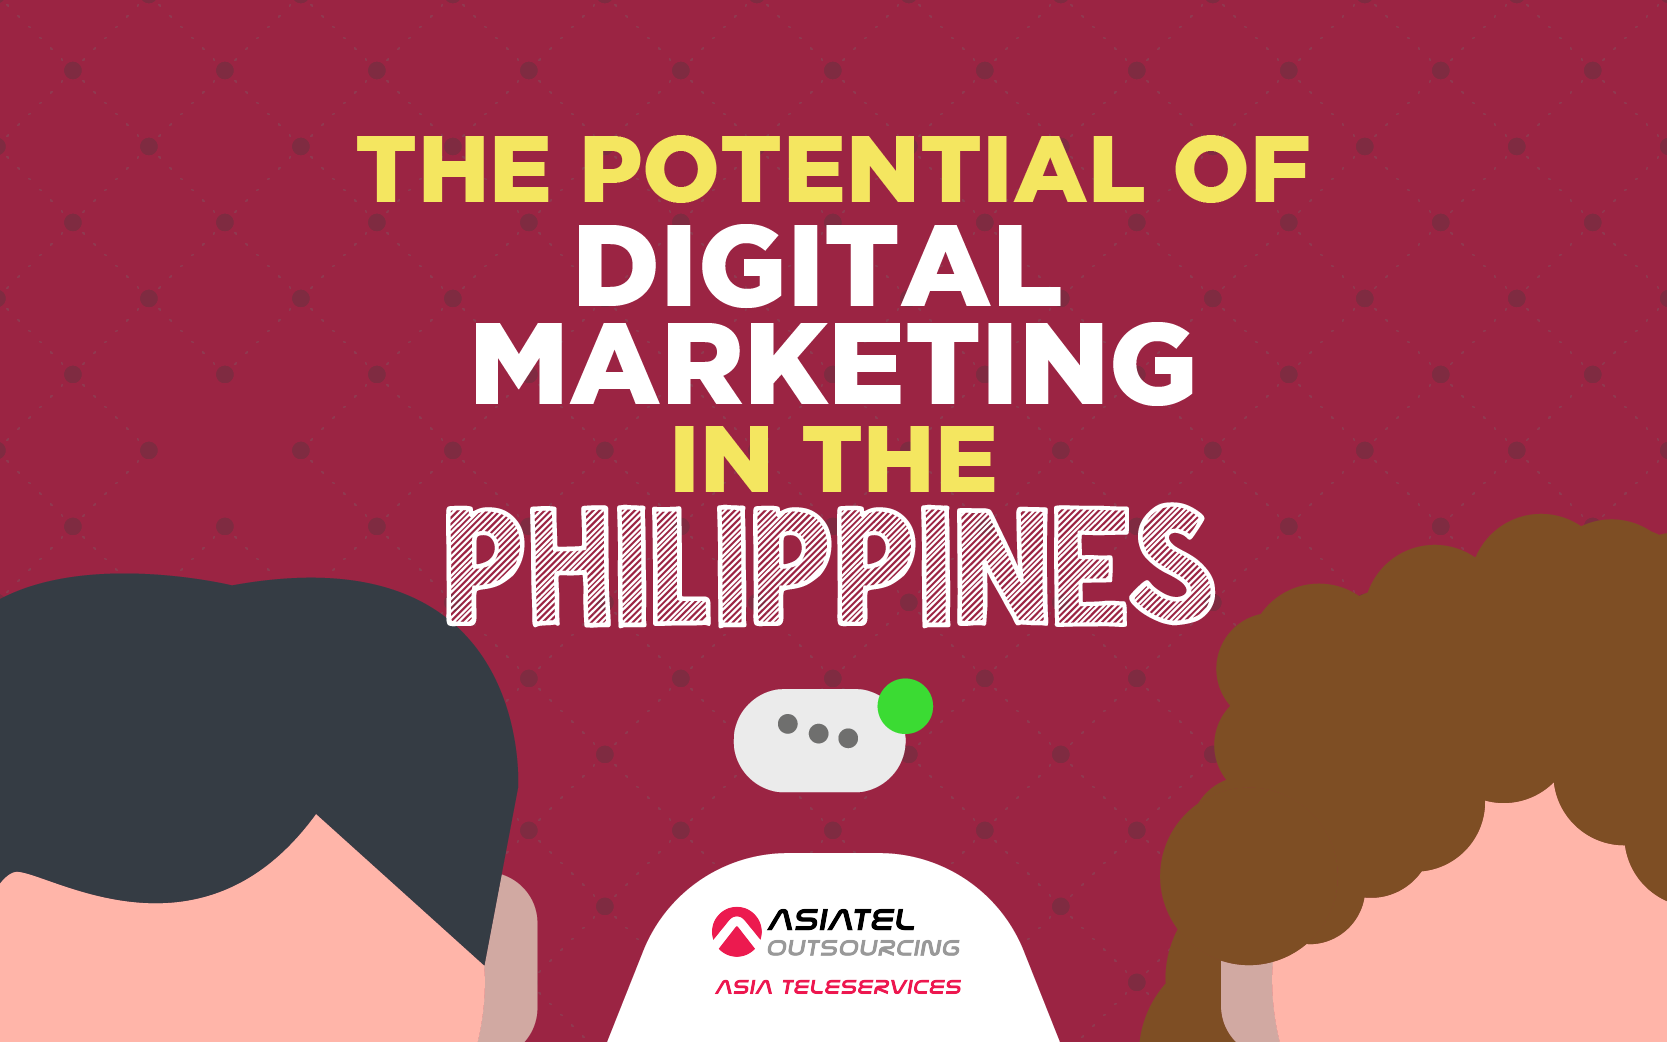 Digital Marketing in the Philippines